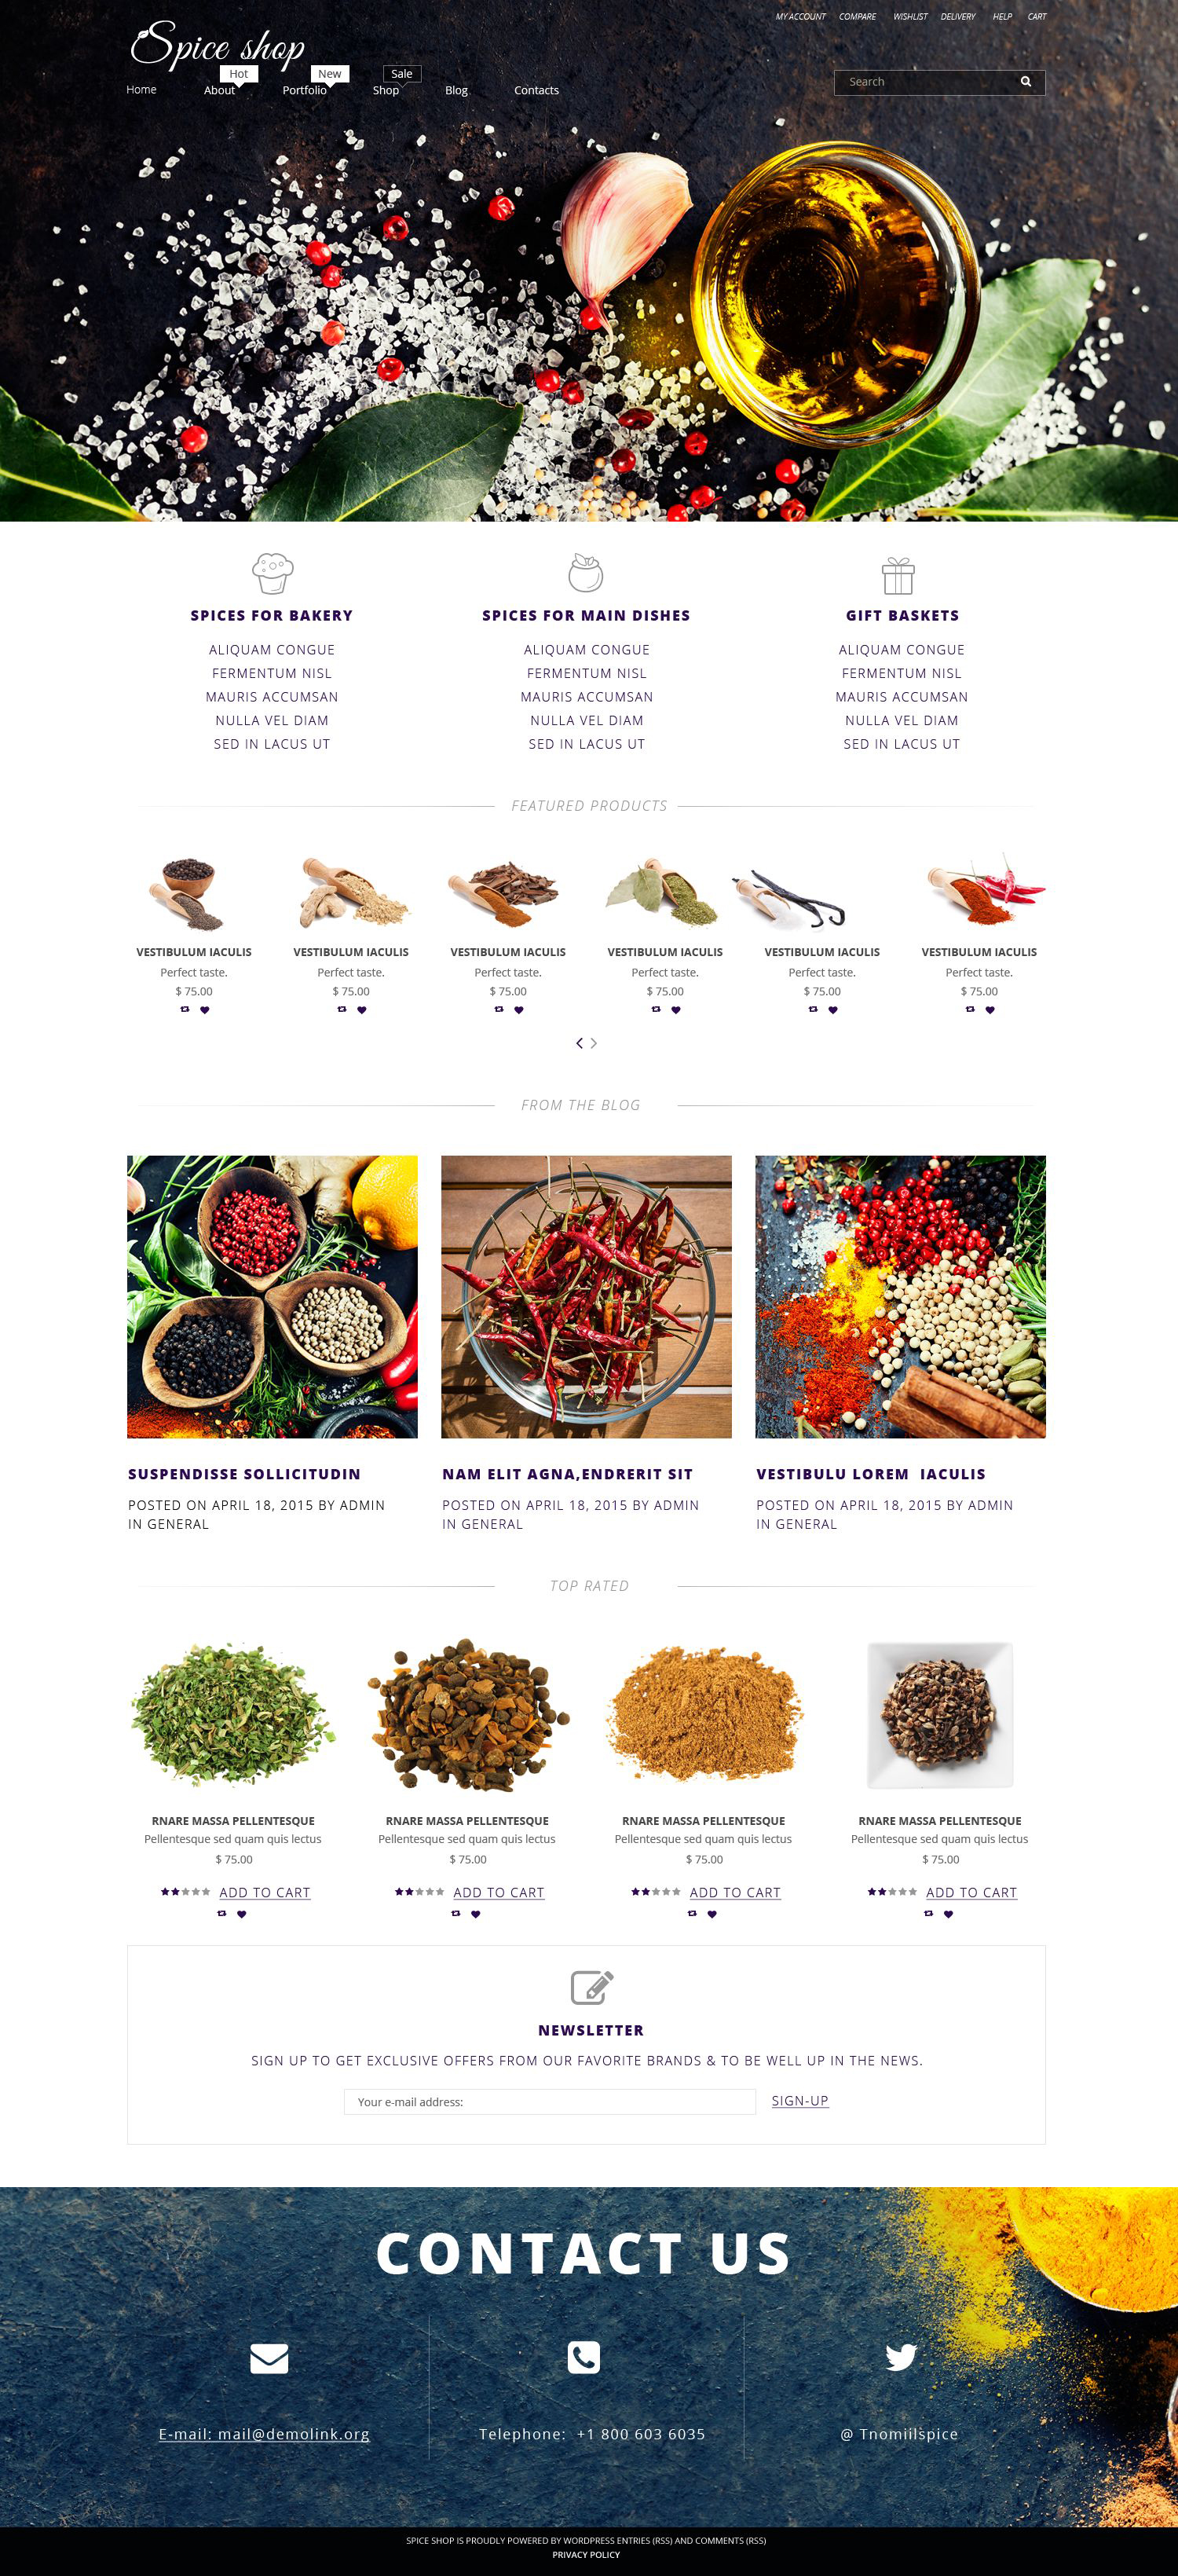 The Spices Spice Store WooCommerce Design 53423, one of the best WooCommerce themes of its kind (cafe and restaurant, most popular), also known as spices spice store WooCommerce template, spicy WooCommerce template, flavour shop WooCommerce template, cook WooCommerce template, pepper WooCommerce template, salt WooCommerce template, powder WooCommerce template, blend WooCommerce template, cinnamon WooCommerce template, dried WooCommerce template, herbs and related with spices spice store, spicy, flavour shop, cook, pepper, salt, powder, blend, cinnamon, dried, herbs, etc.